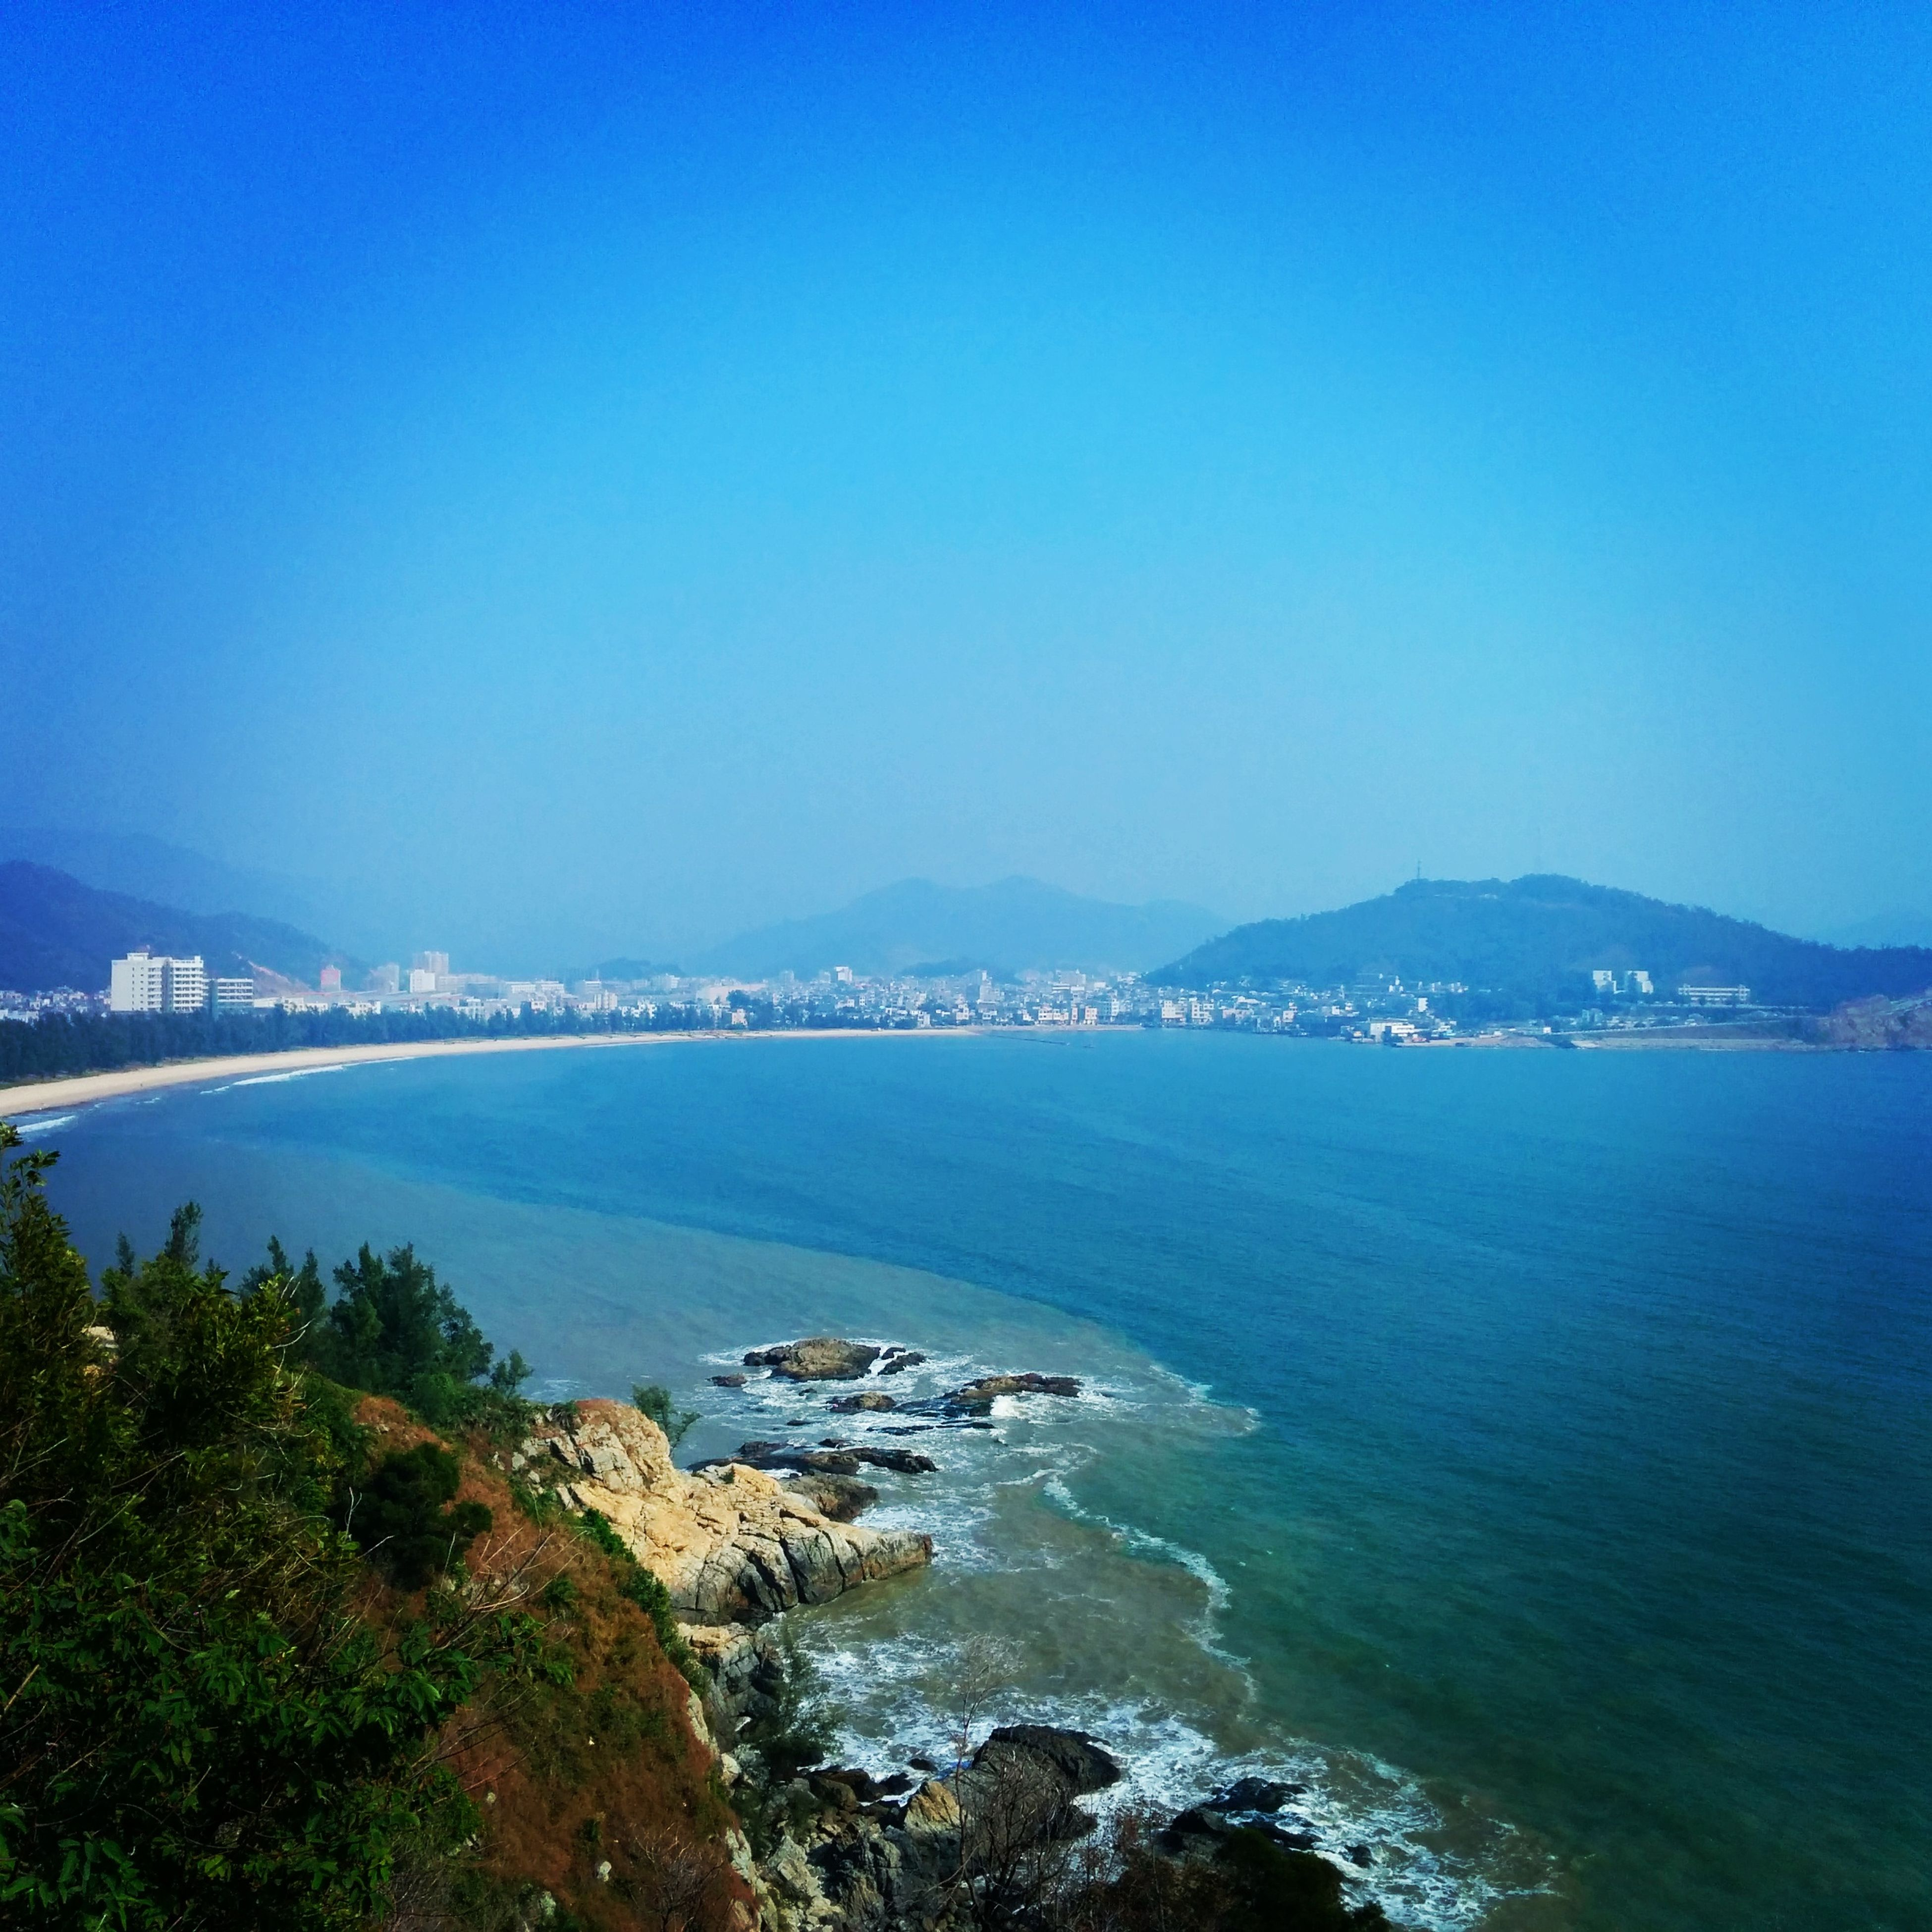 sea, water, blue, clear sky, copy space, scenics, coastline, mountain, beauty in nature, tranquil scene, tranquility, nature, built structure, beach, architecture, city, high angle view, waterfront, building exterior, shore